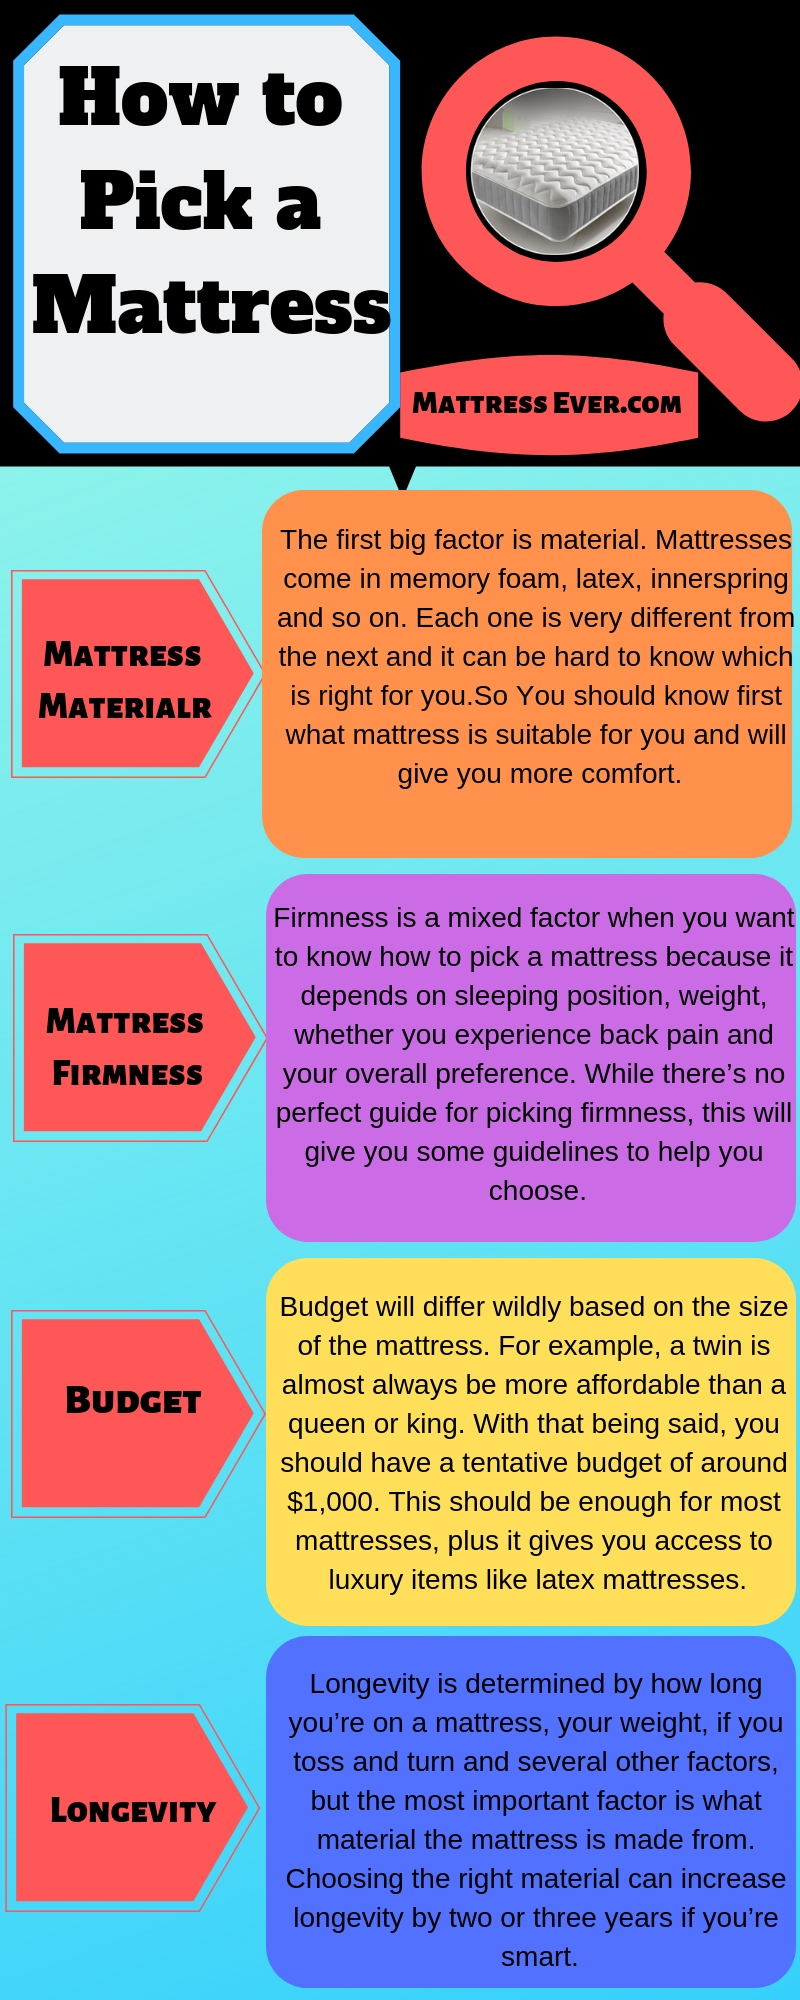 How to Pick a Mattress infographic